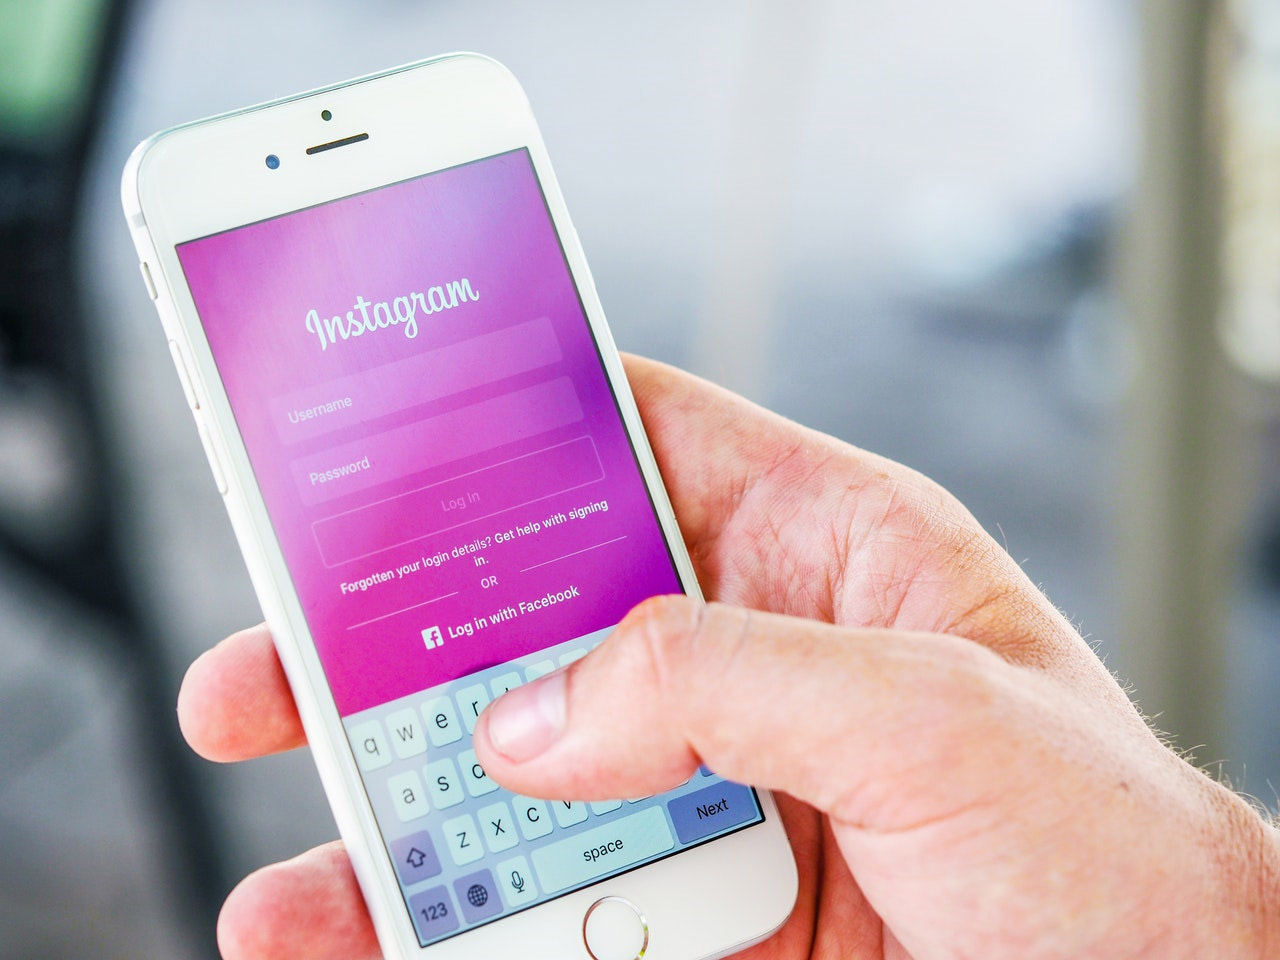 Instagram is an important part of generating sales online